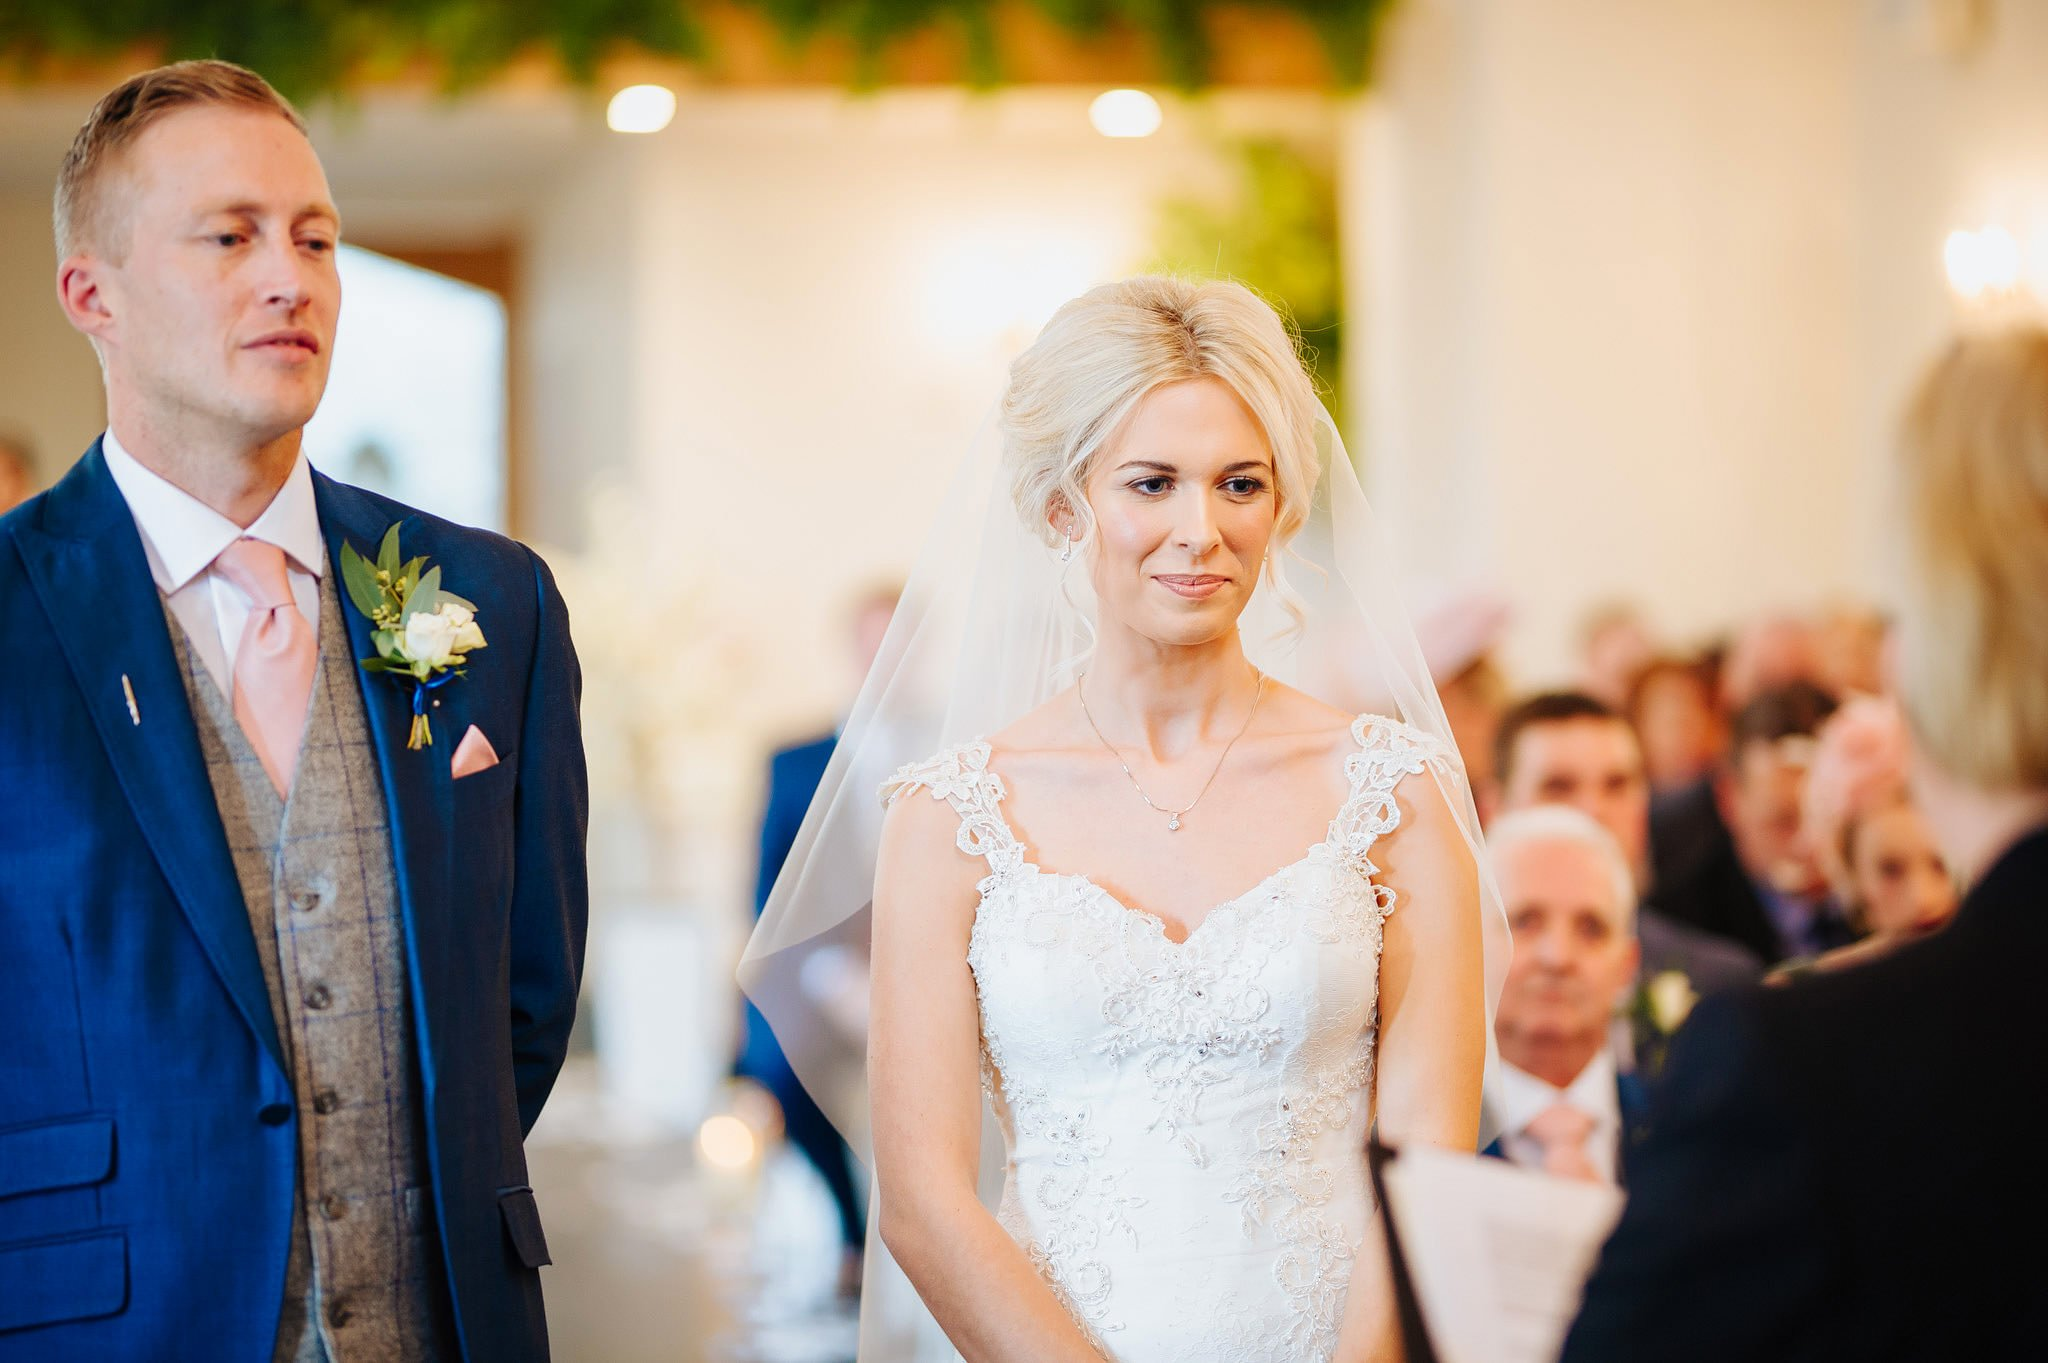 sigma 85mm art review wedding photography 103 - Sigma 85mm F1.4 ART review vs Wedding Photography